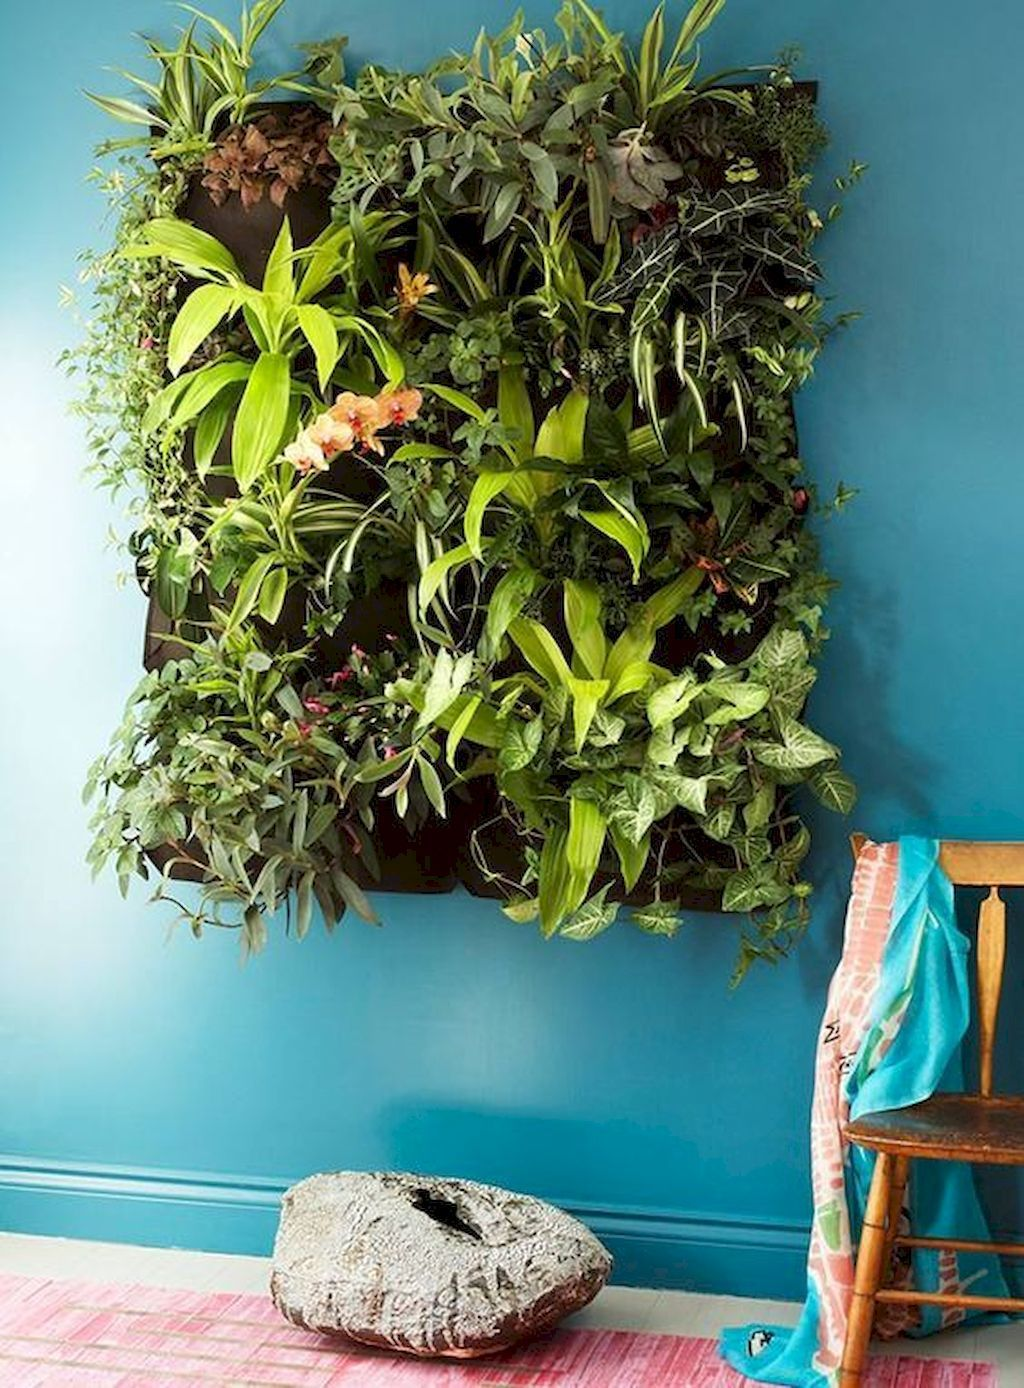 Amazing Living Wall Indoor Decoration Ideas 07